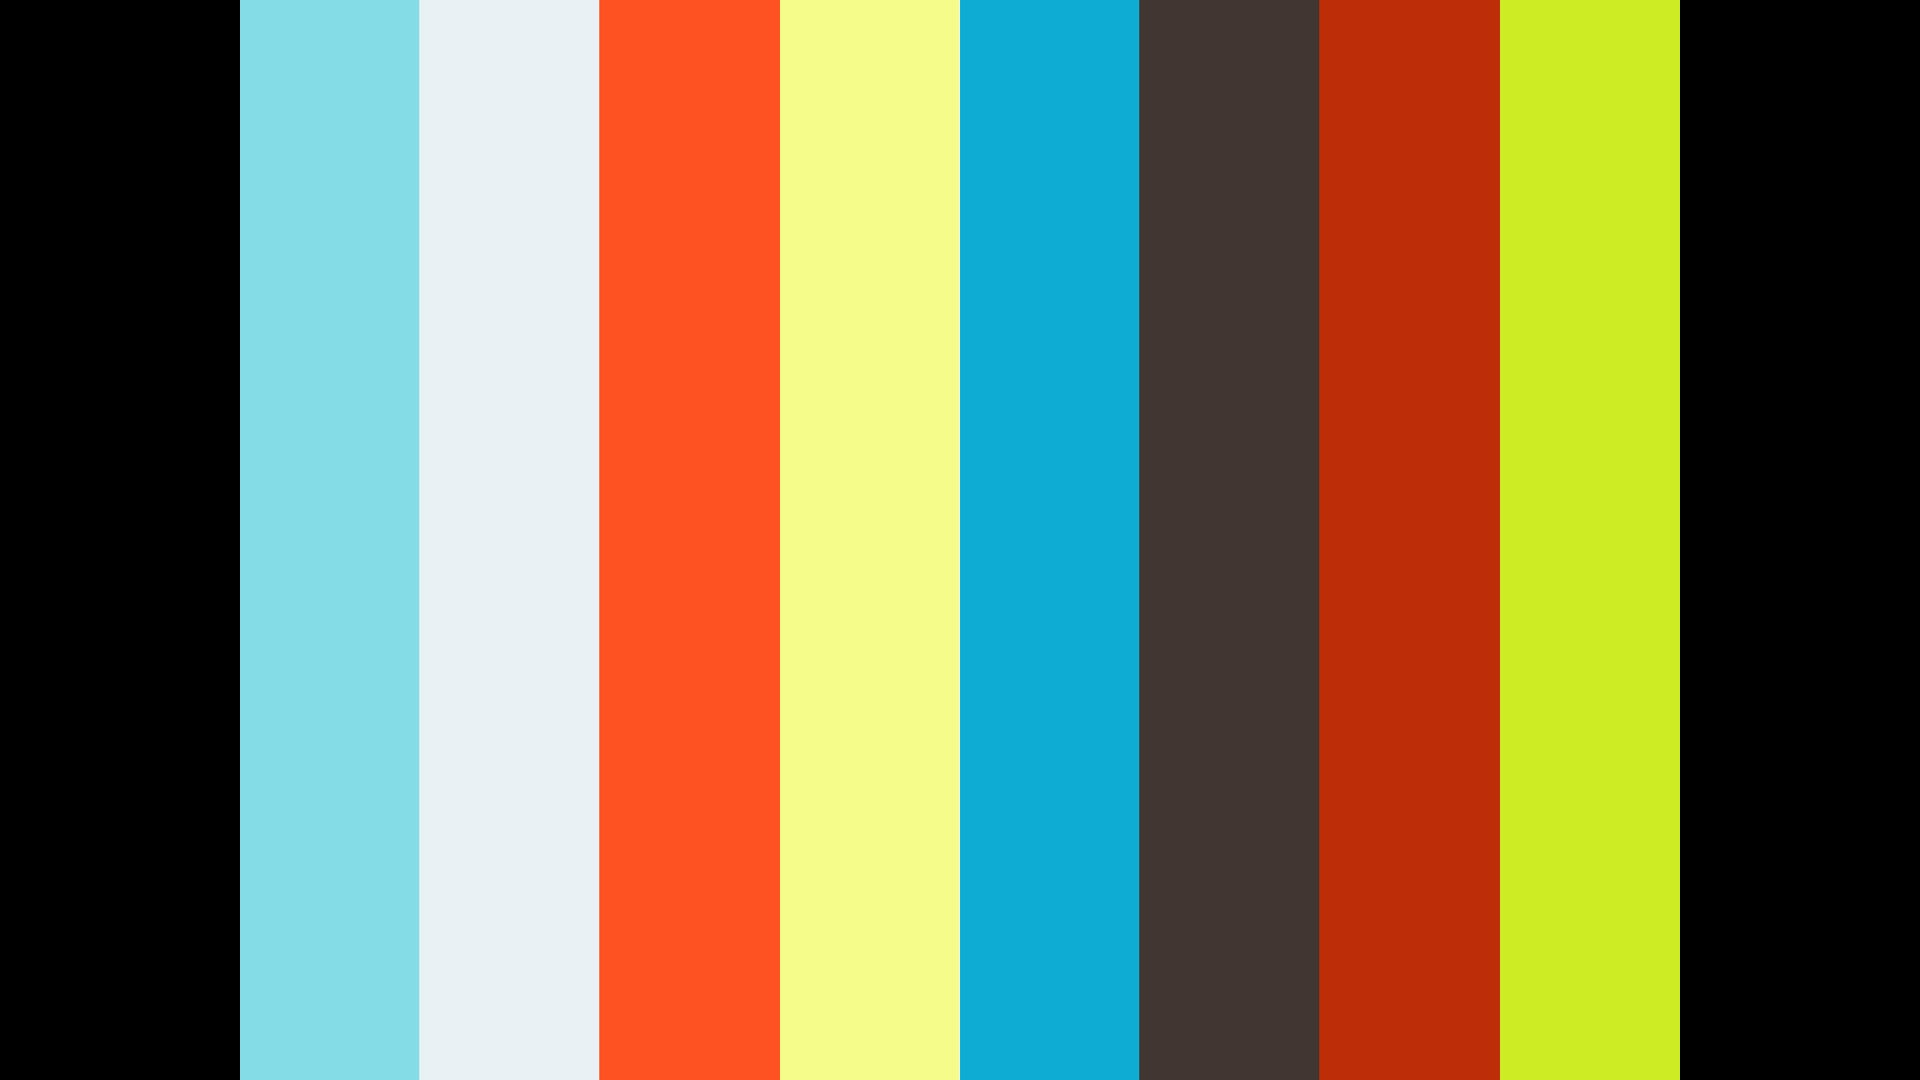 Bridges: Transitioning to Civilian Life